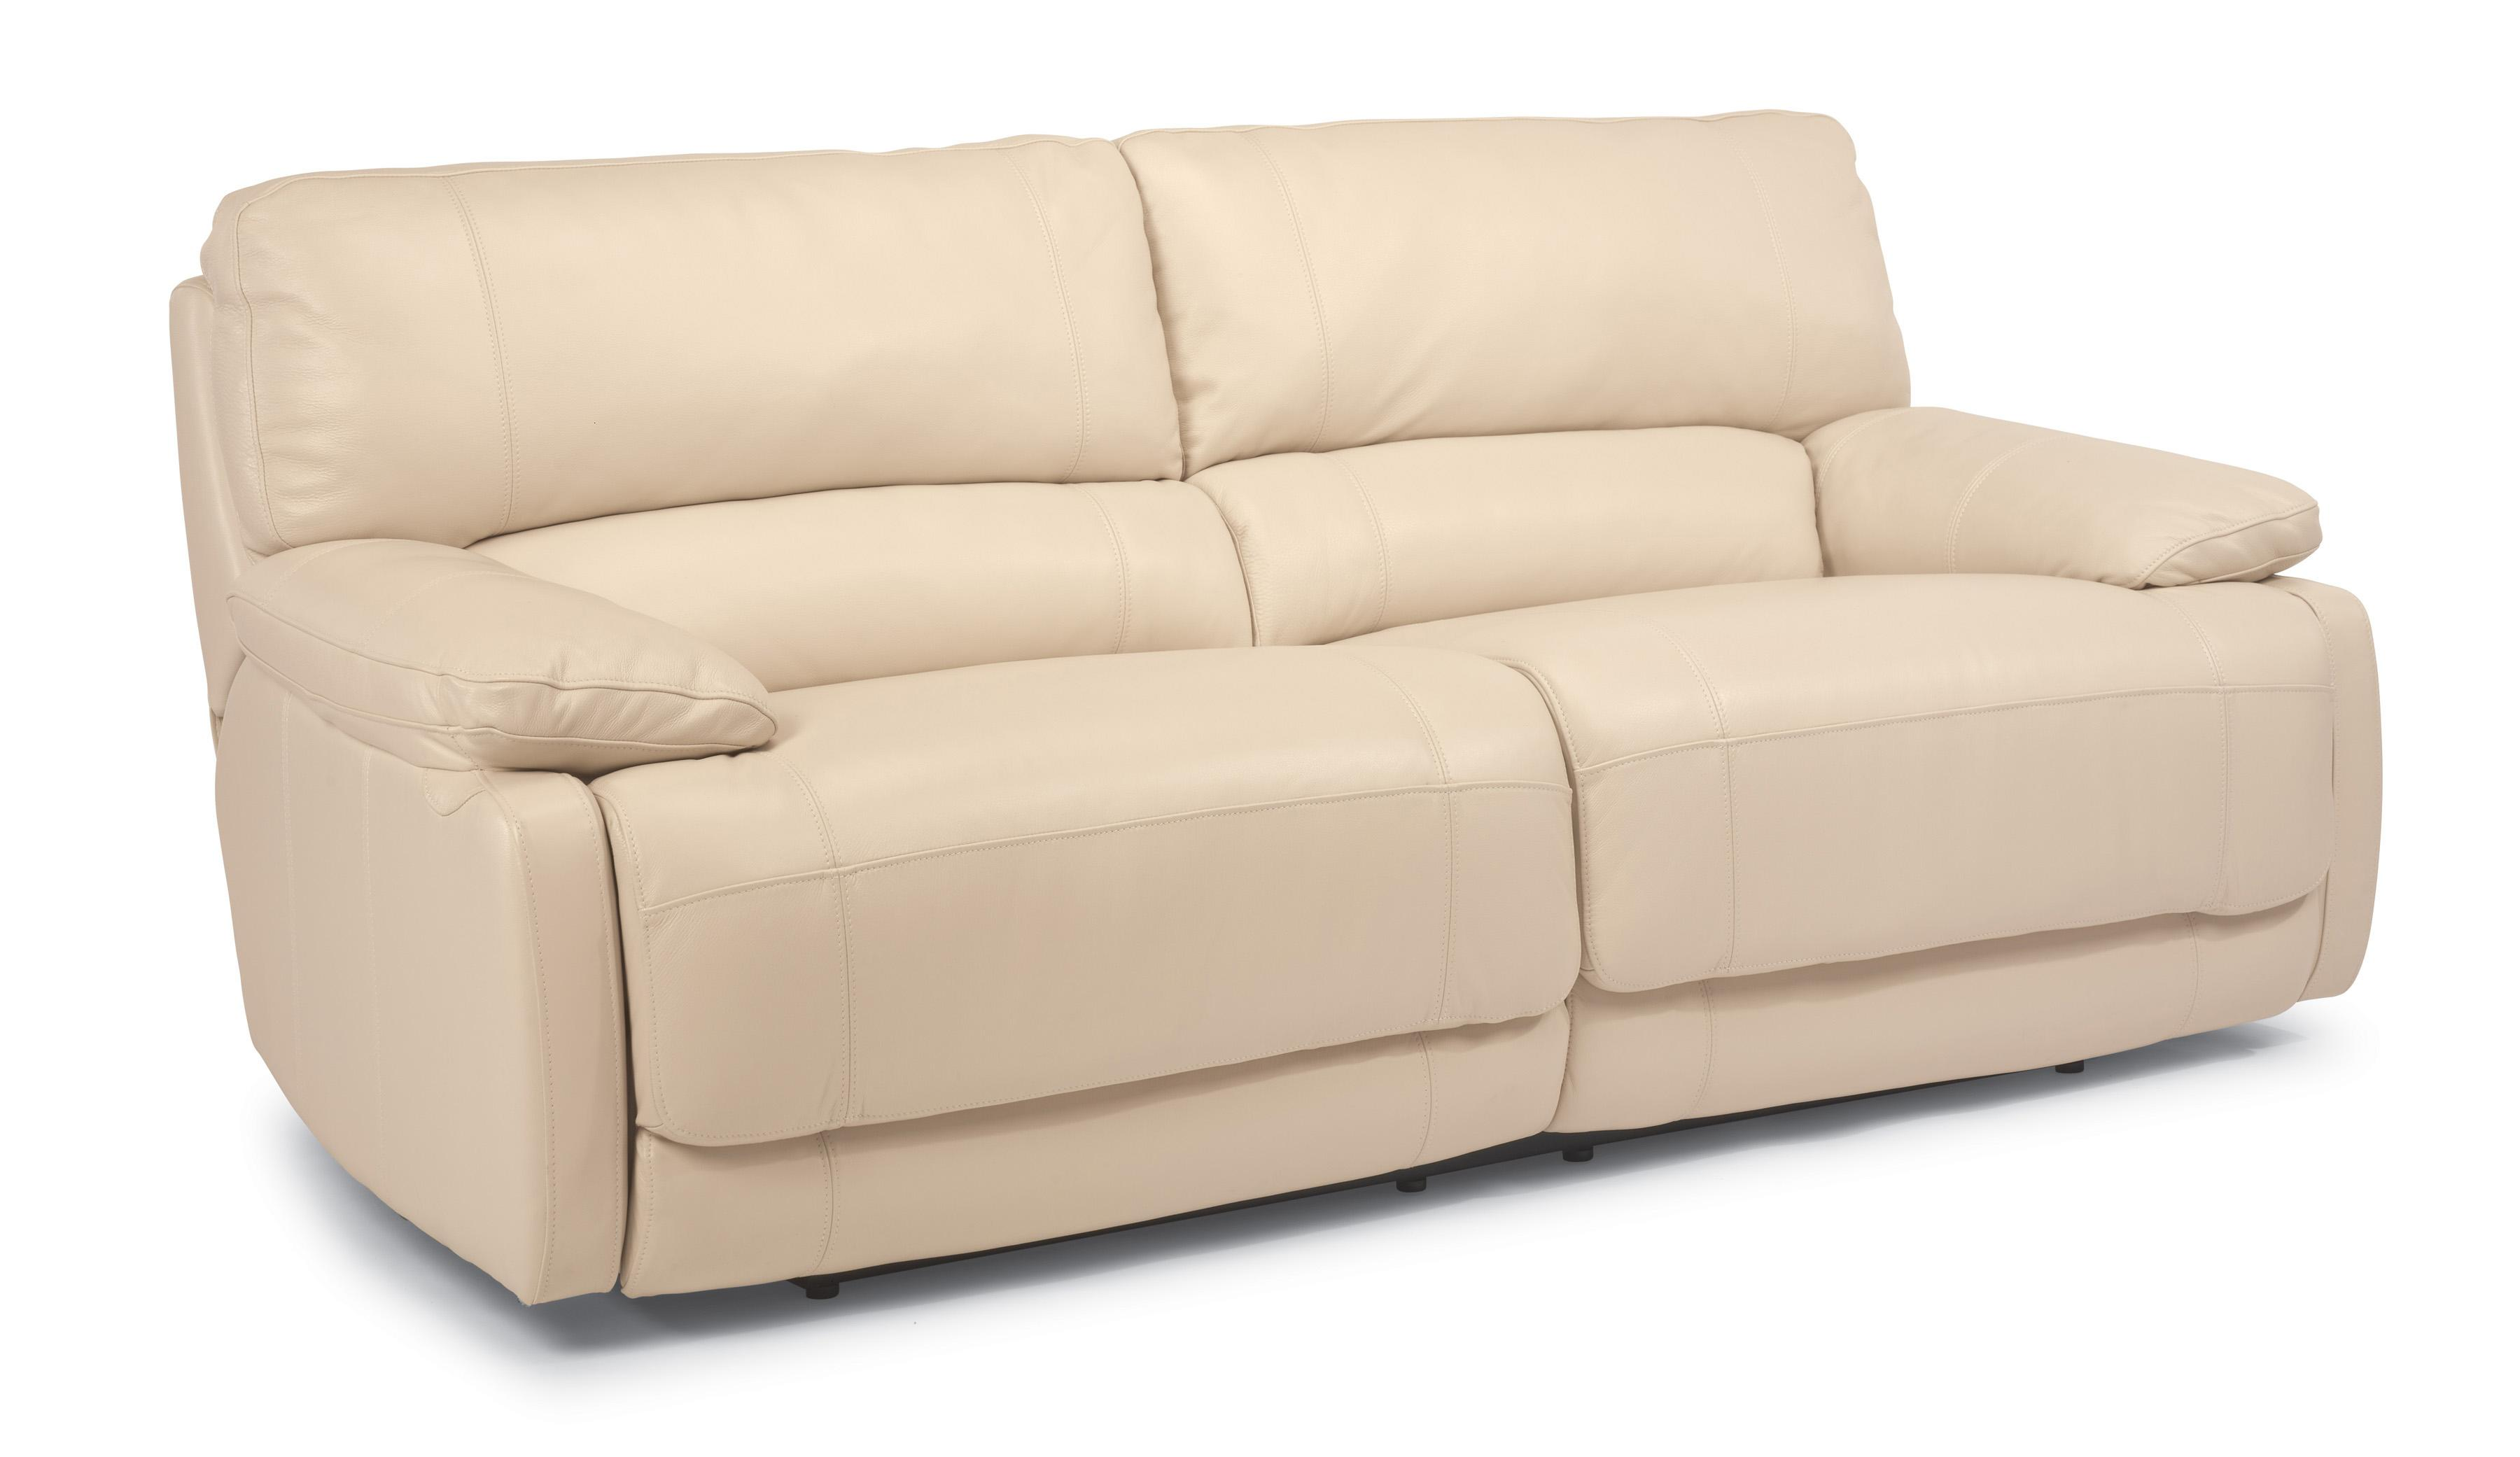 Flexsteel Latitudes - Hermosa Power Reclining Sofa - Item Number: 1276-62P